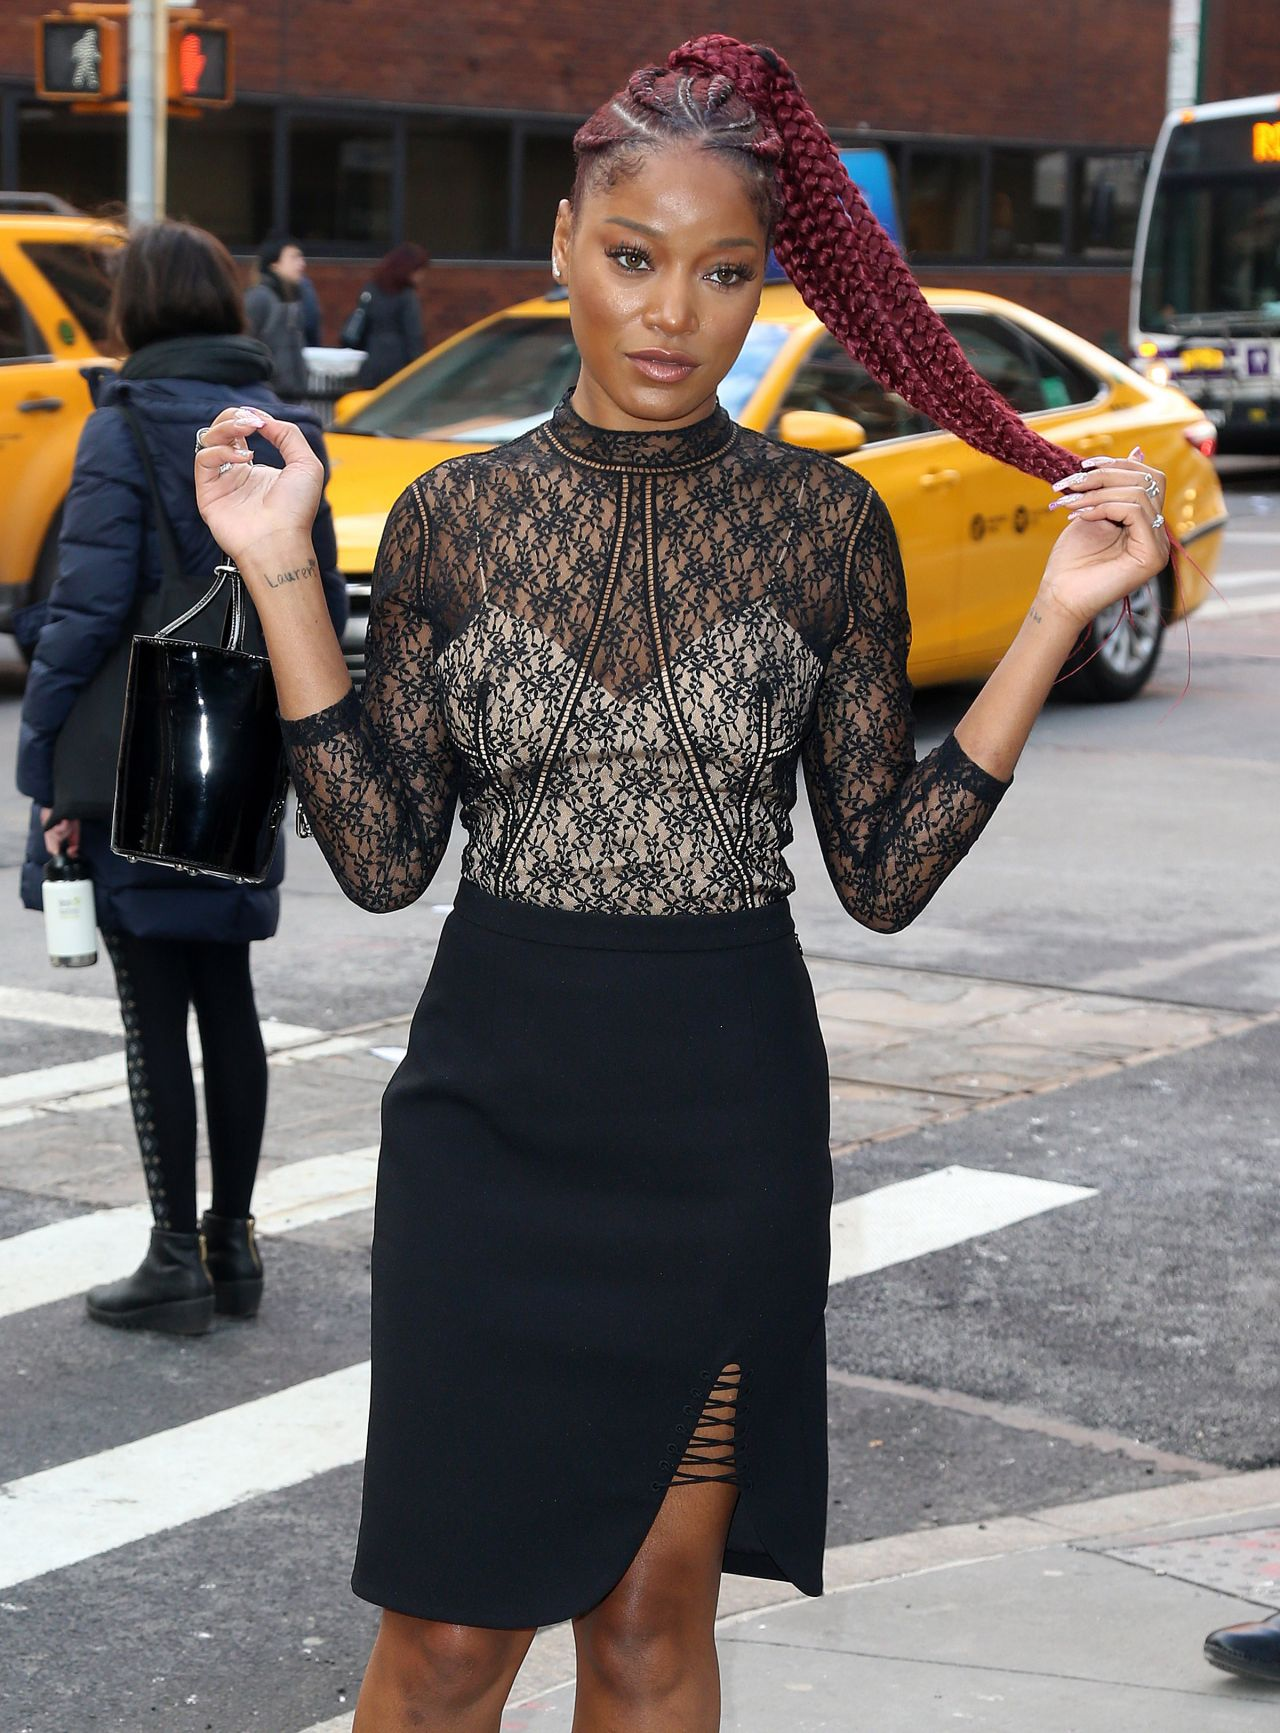 Keke Palmer at AOL Building in NYC 2/1/ 2017Keke Palmer Rolling Out